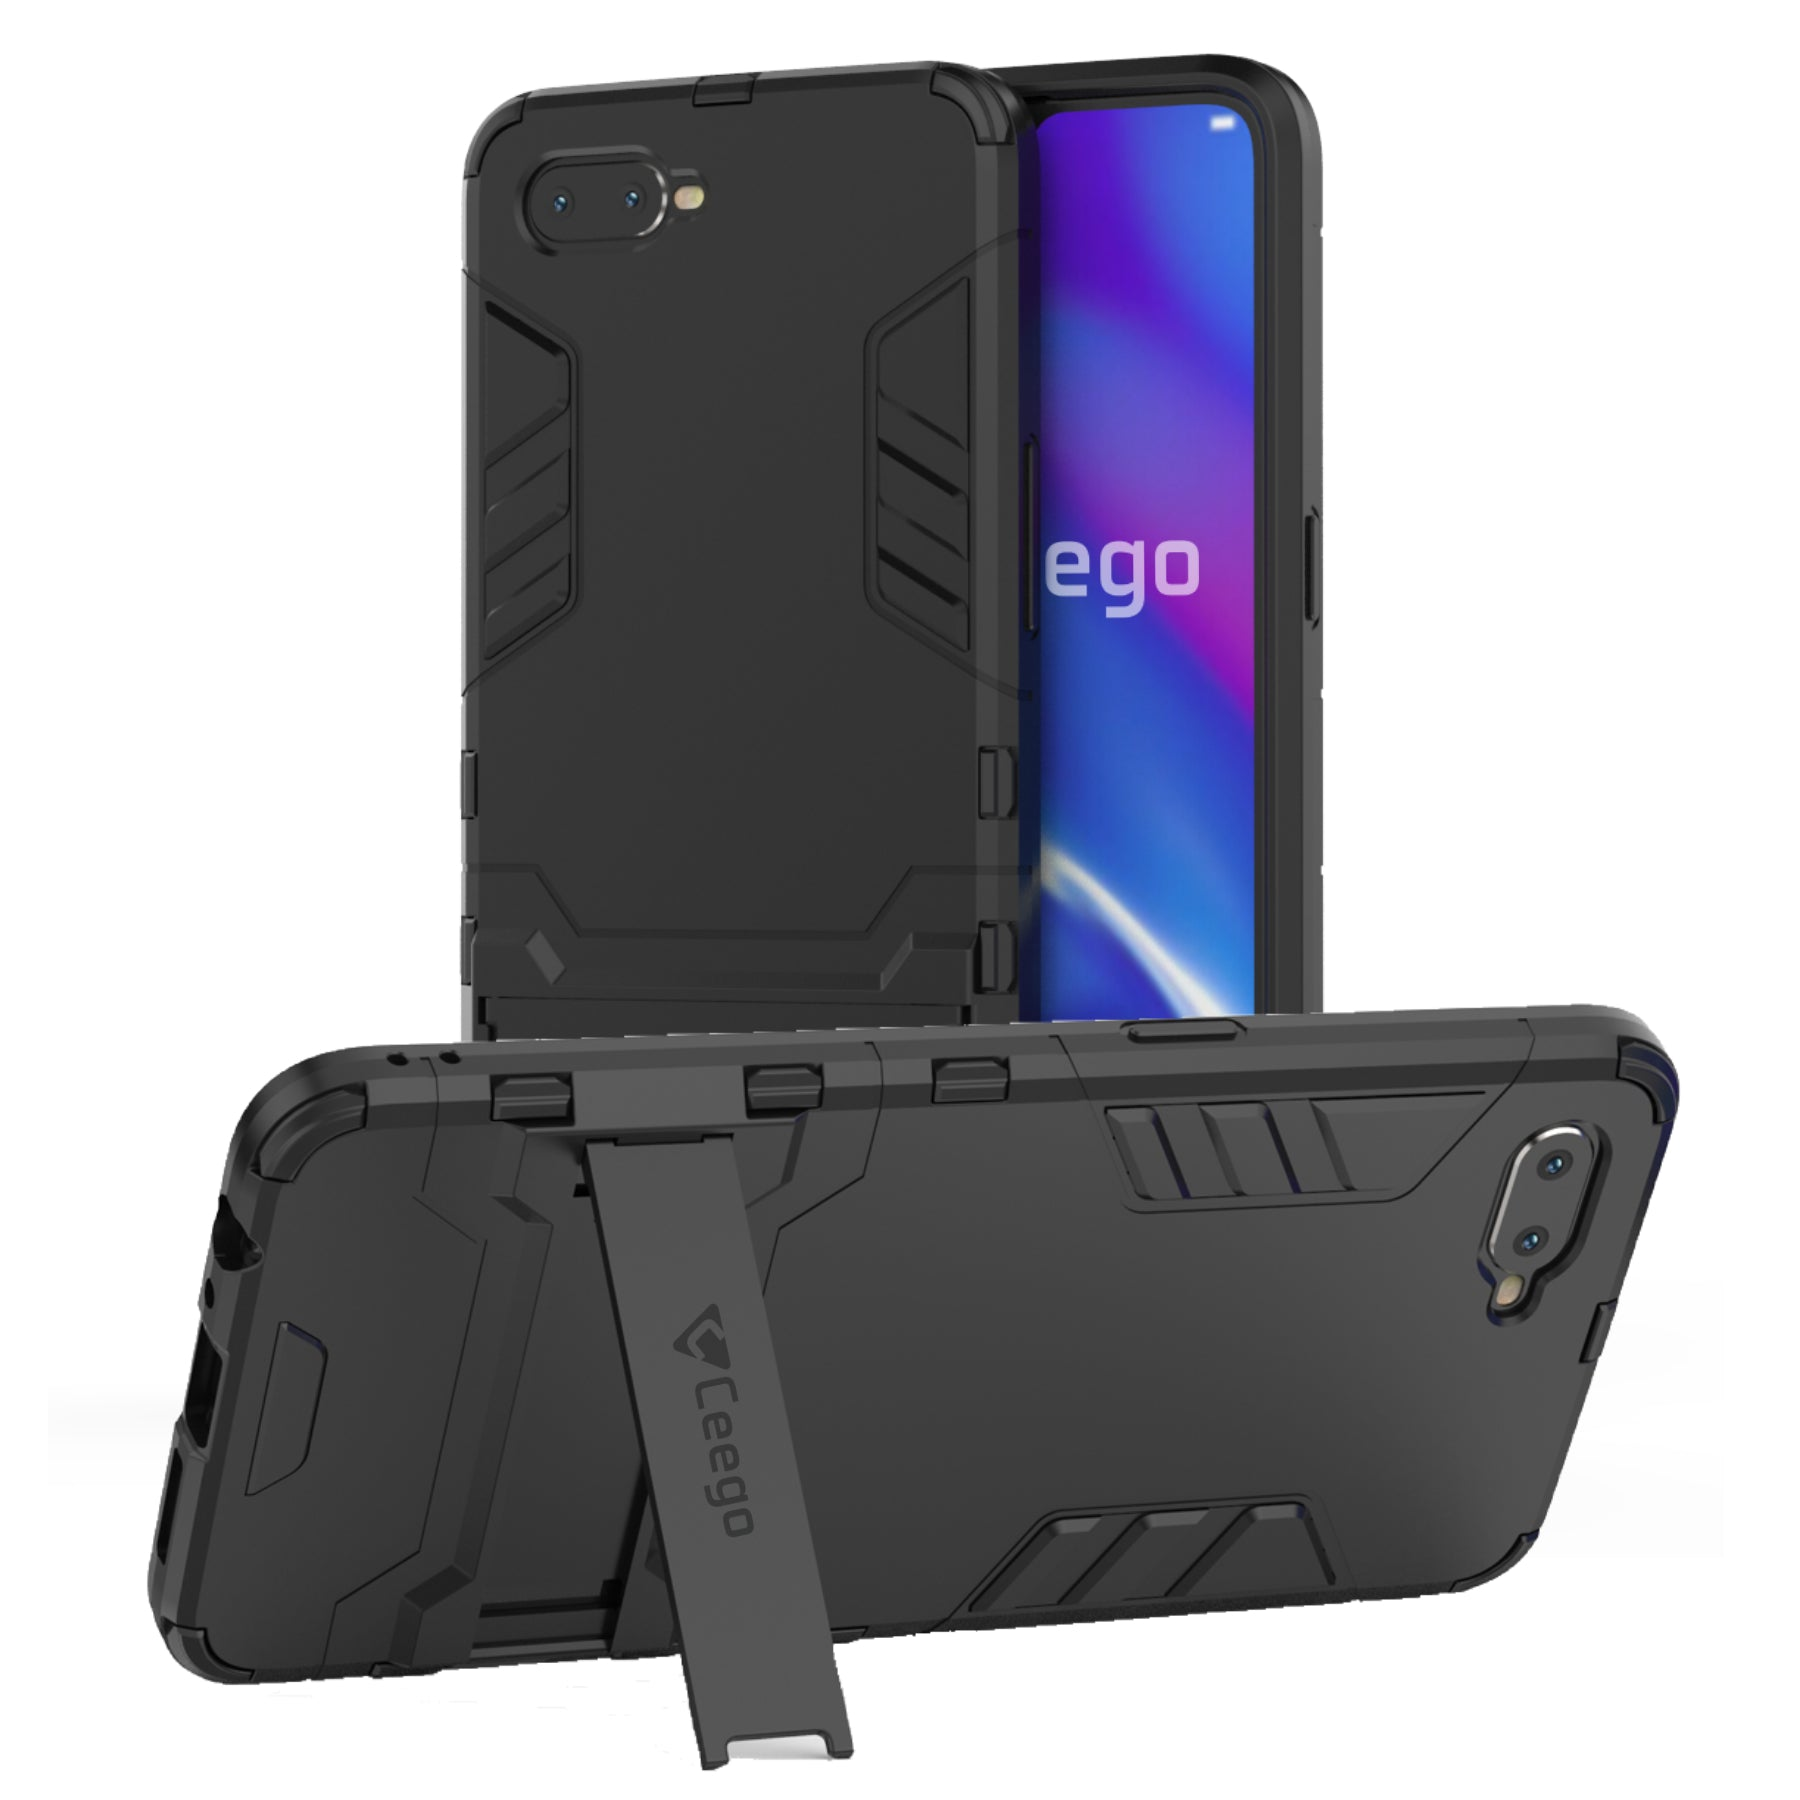 Ceego Stealth Defence Back Case for Oppo K1 – Matte Black